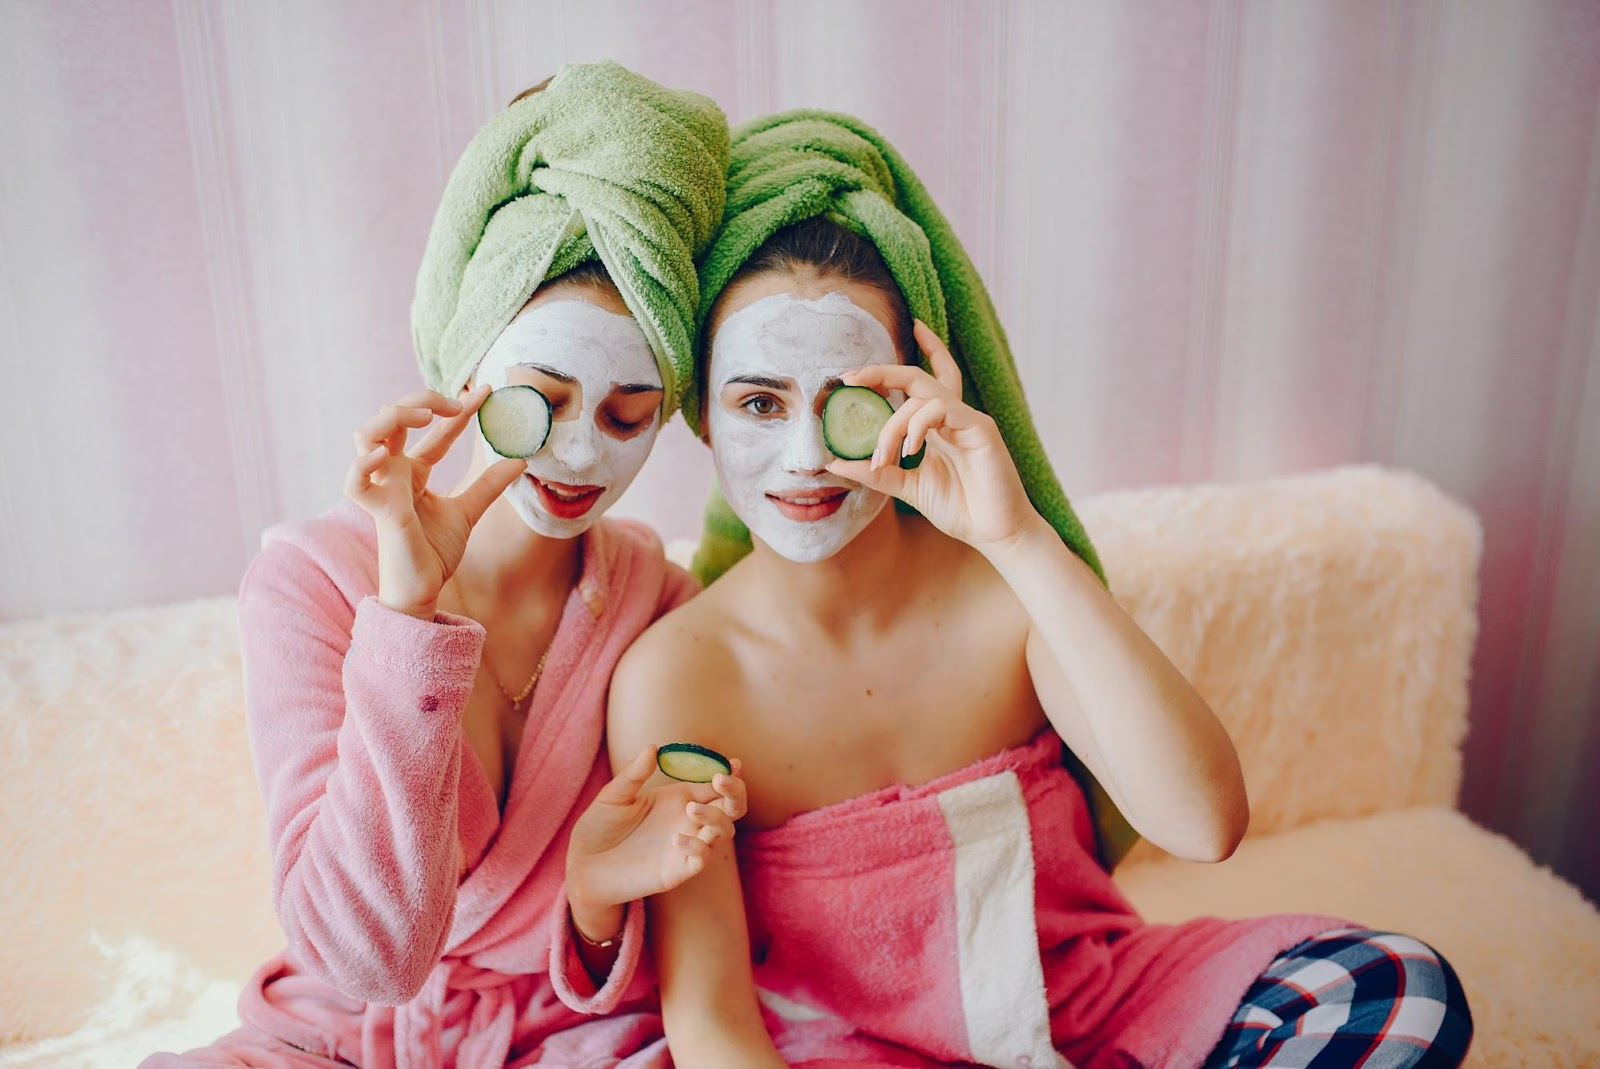 Staycation Tips for Your Next BFF Bonding